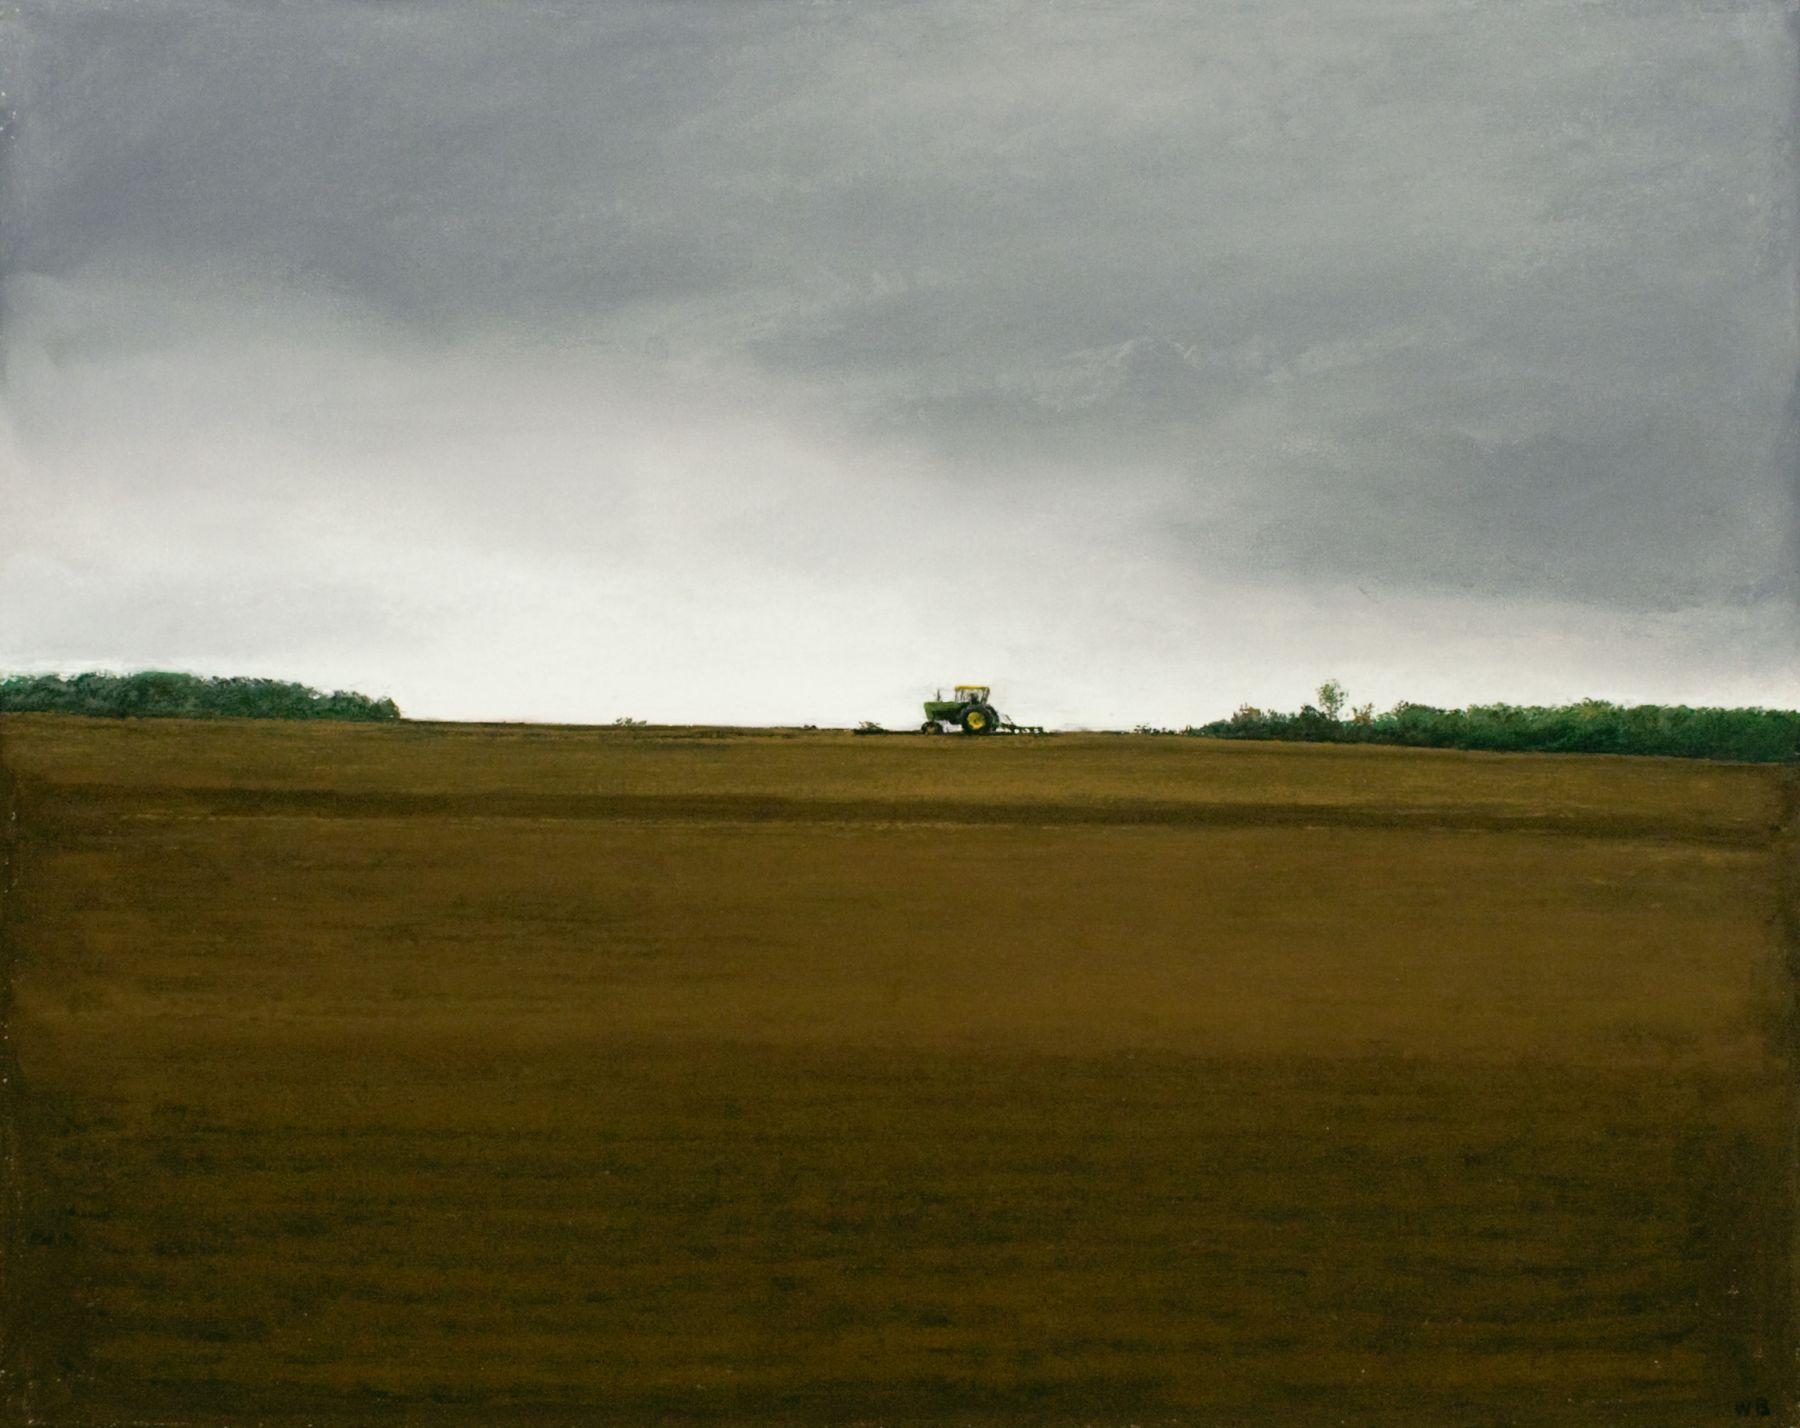 william beckman, John Deere 3, 2014, pastel on paper, image: 24 x 20 inches, paper: 26 x 30 inches